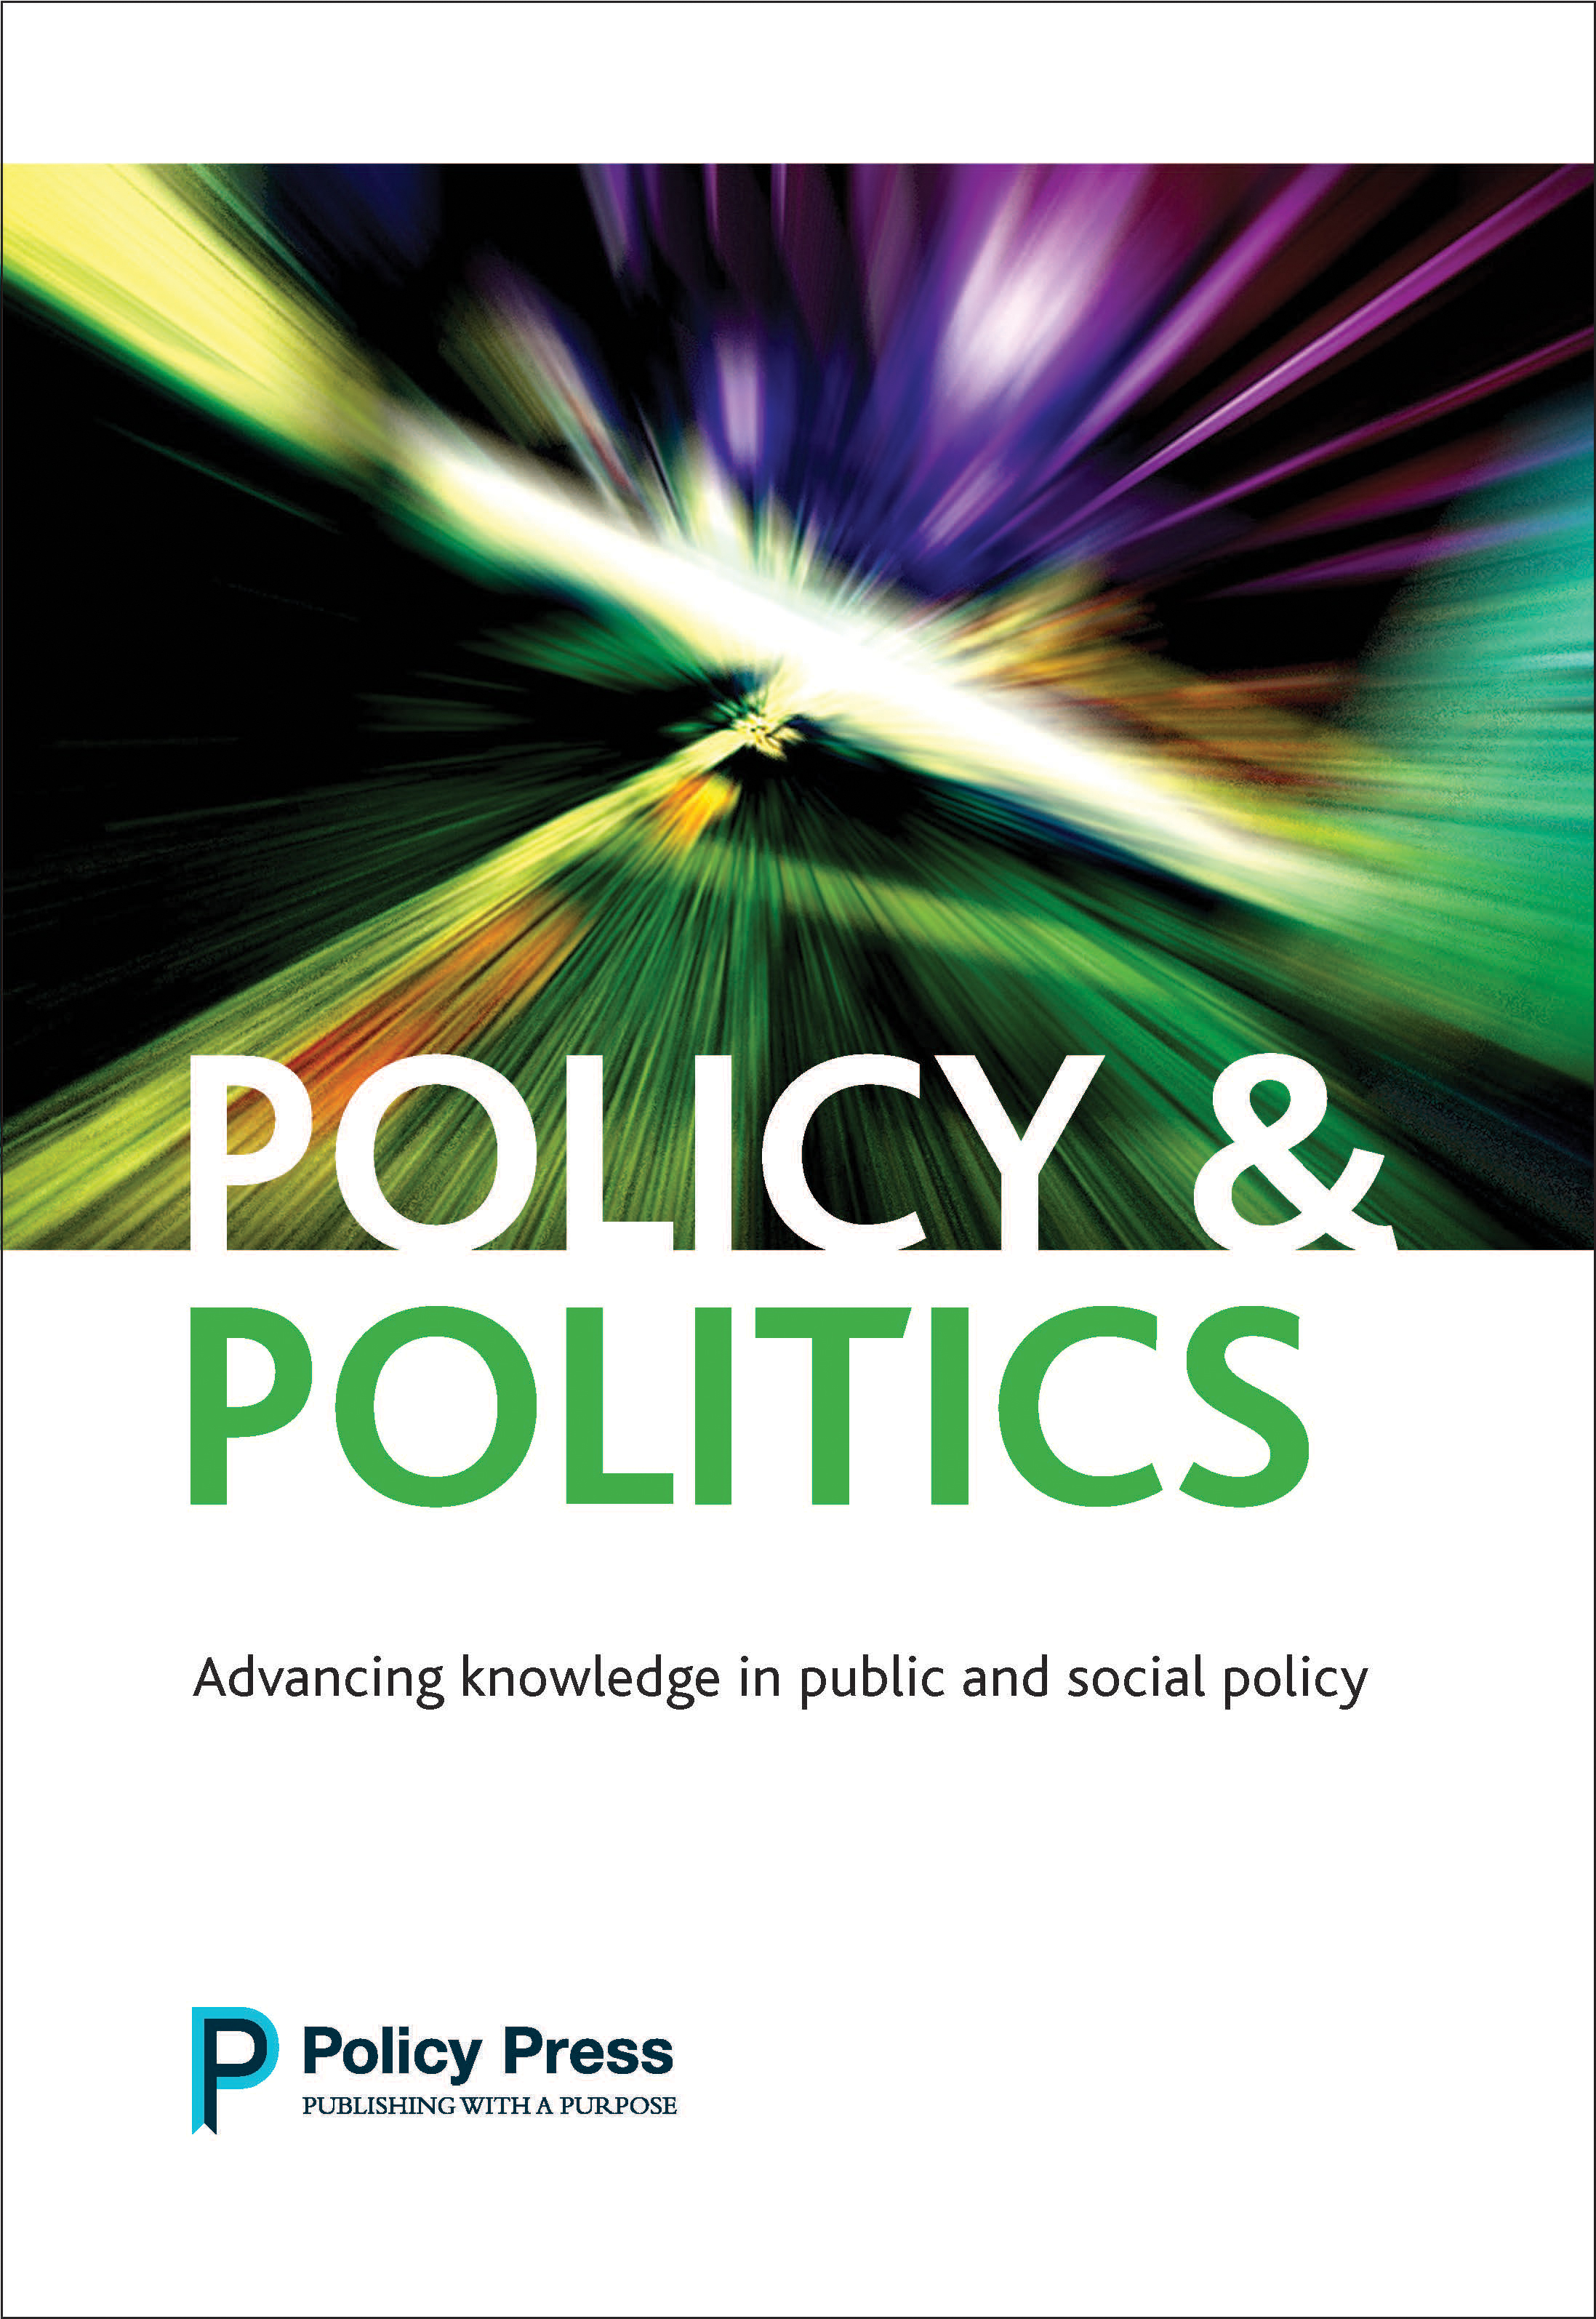 Impressive Impact Factor result for Policy & Politics